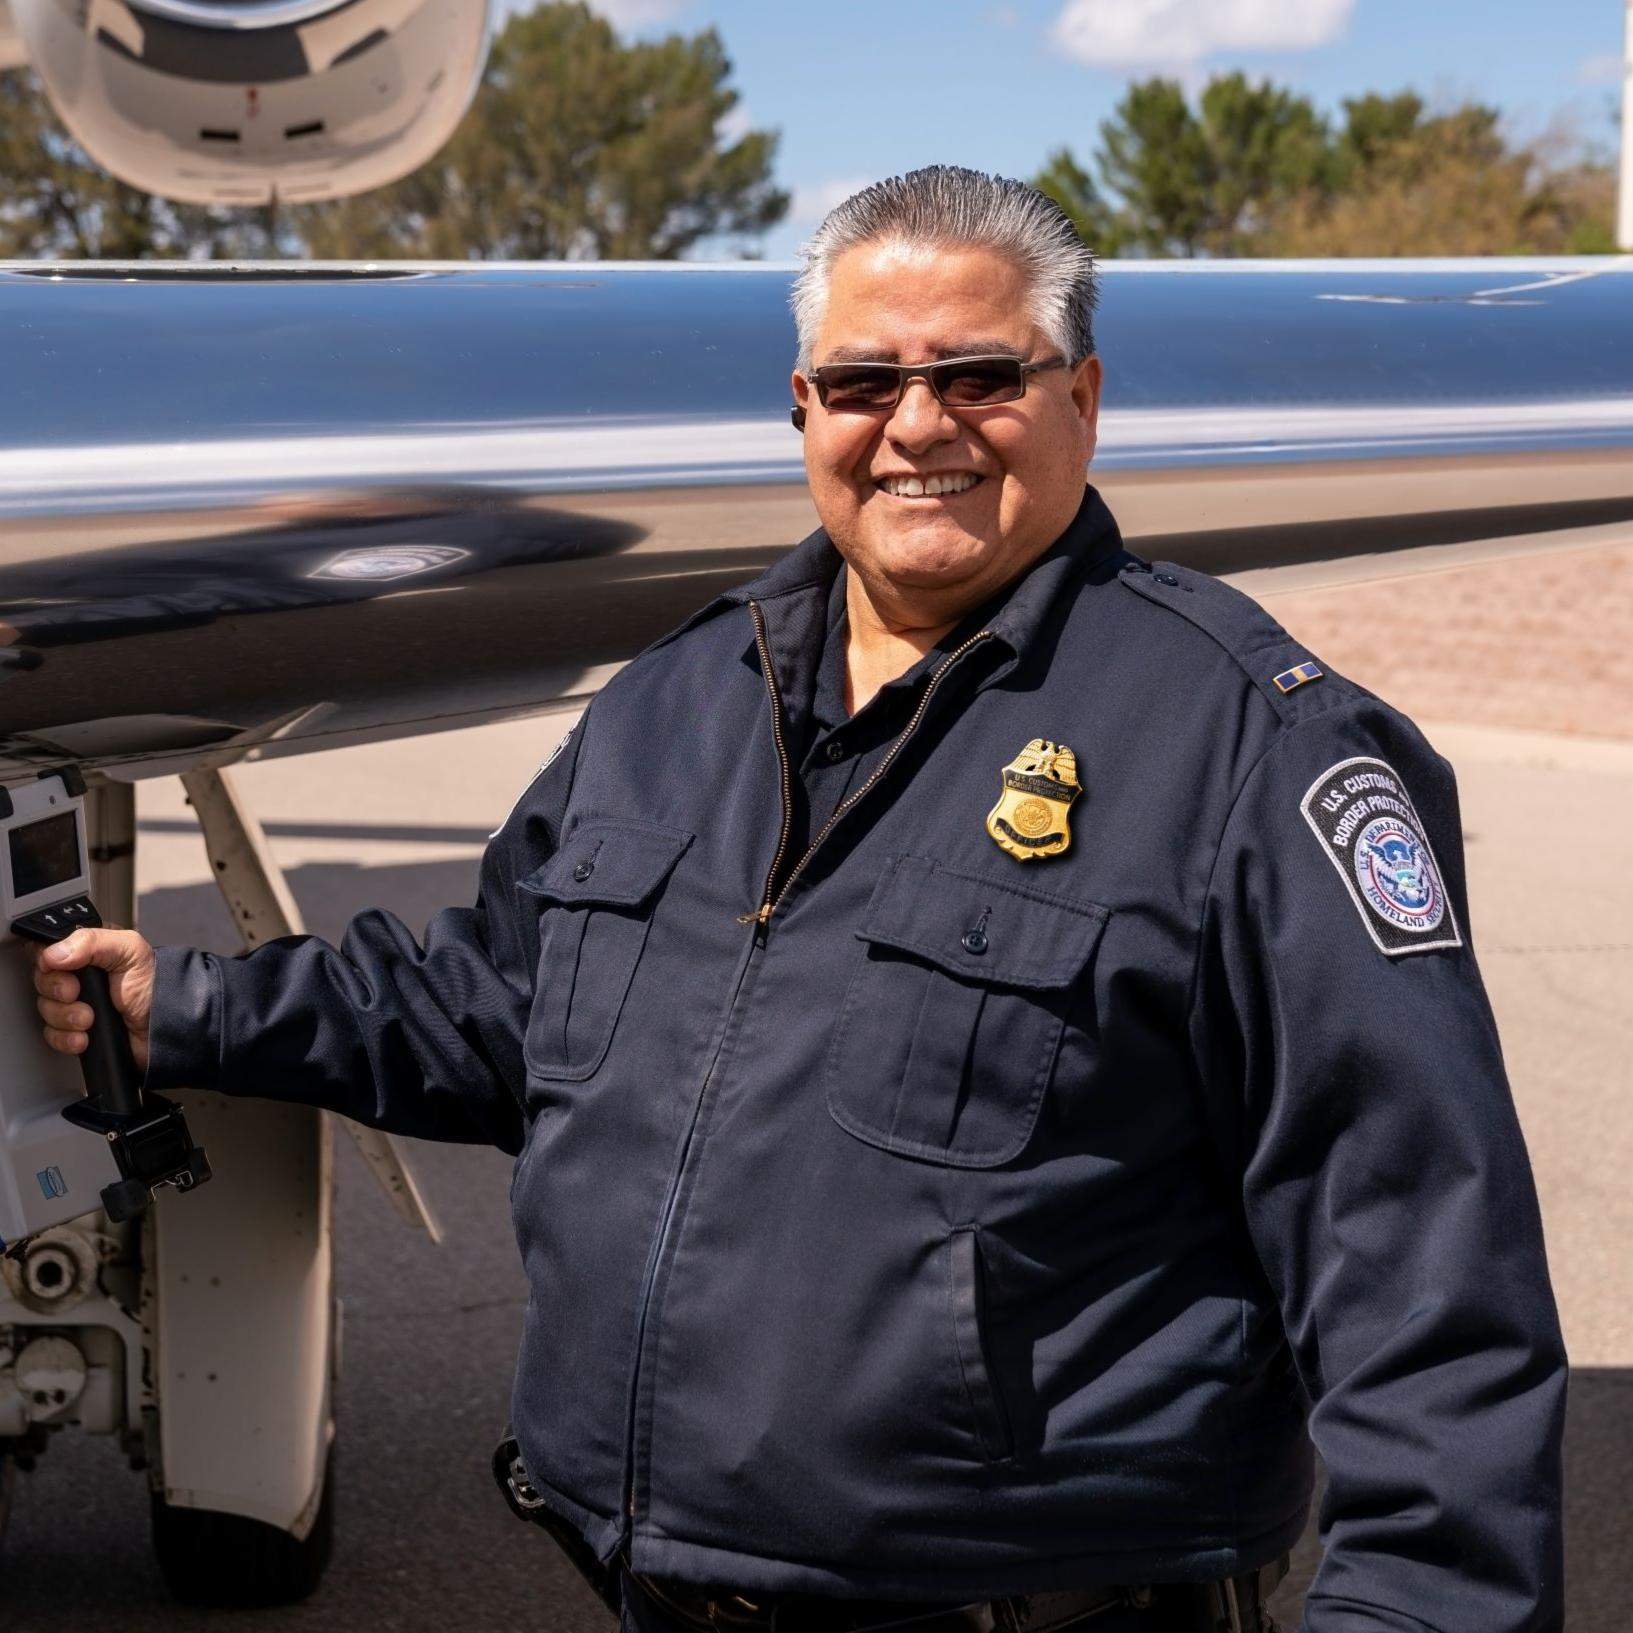 Officer Alfonso H. Murrieta | United States Department of Homeland Security - Customs and Border Protection - Office of Field Operations, U.S. Government